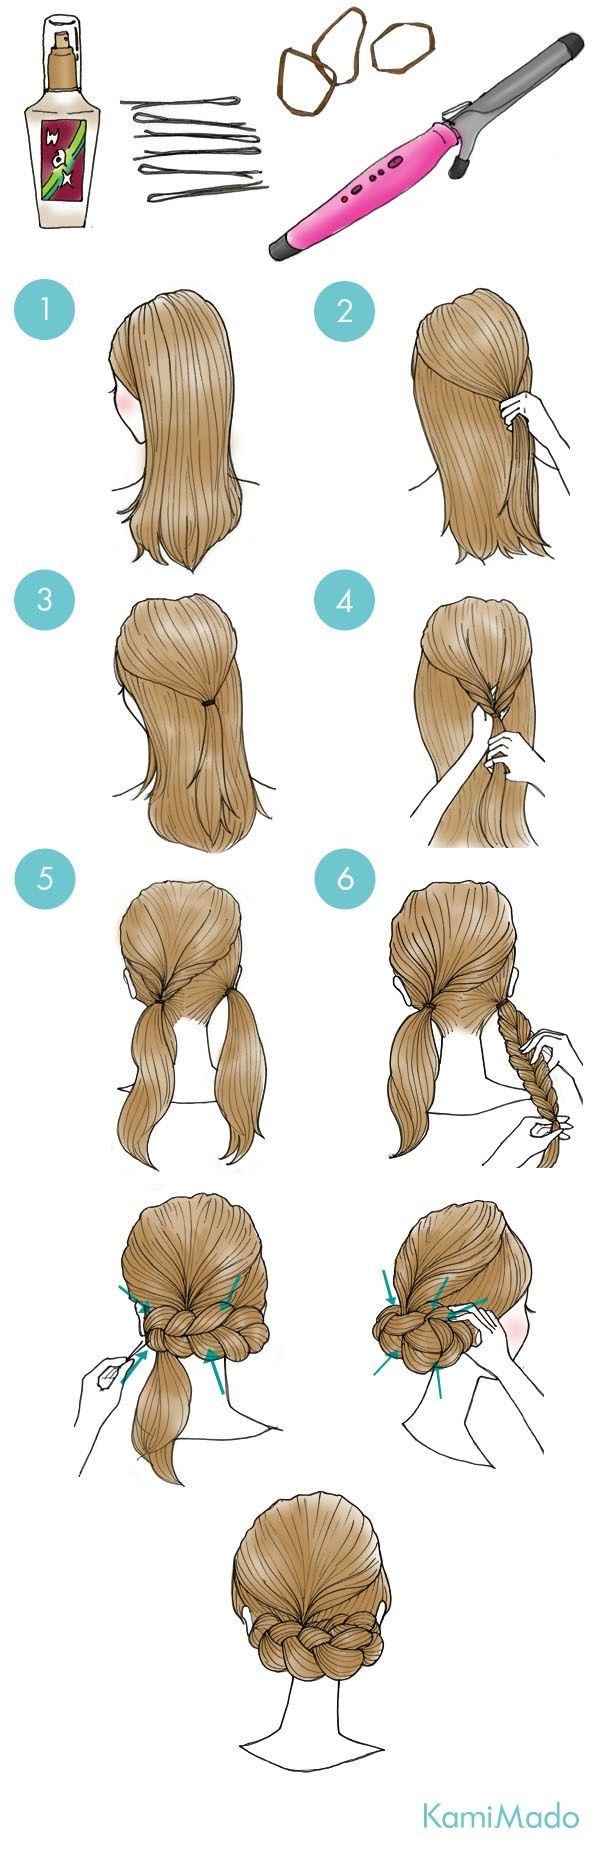 Cute hairstyles follow me guys letus see if we can get